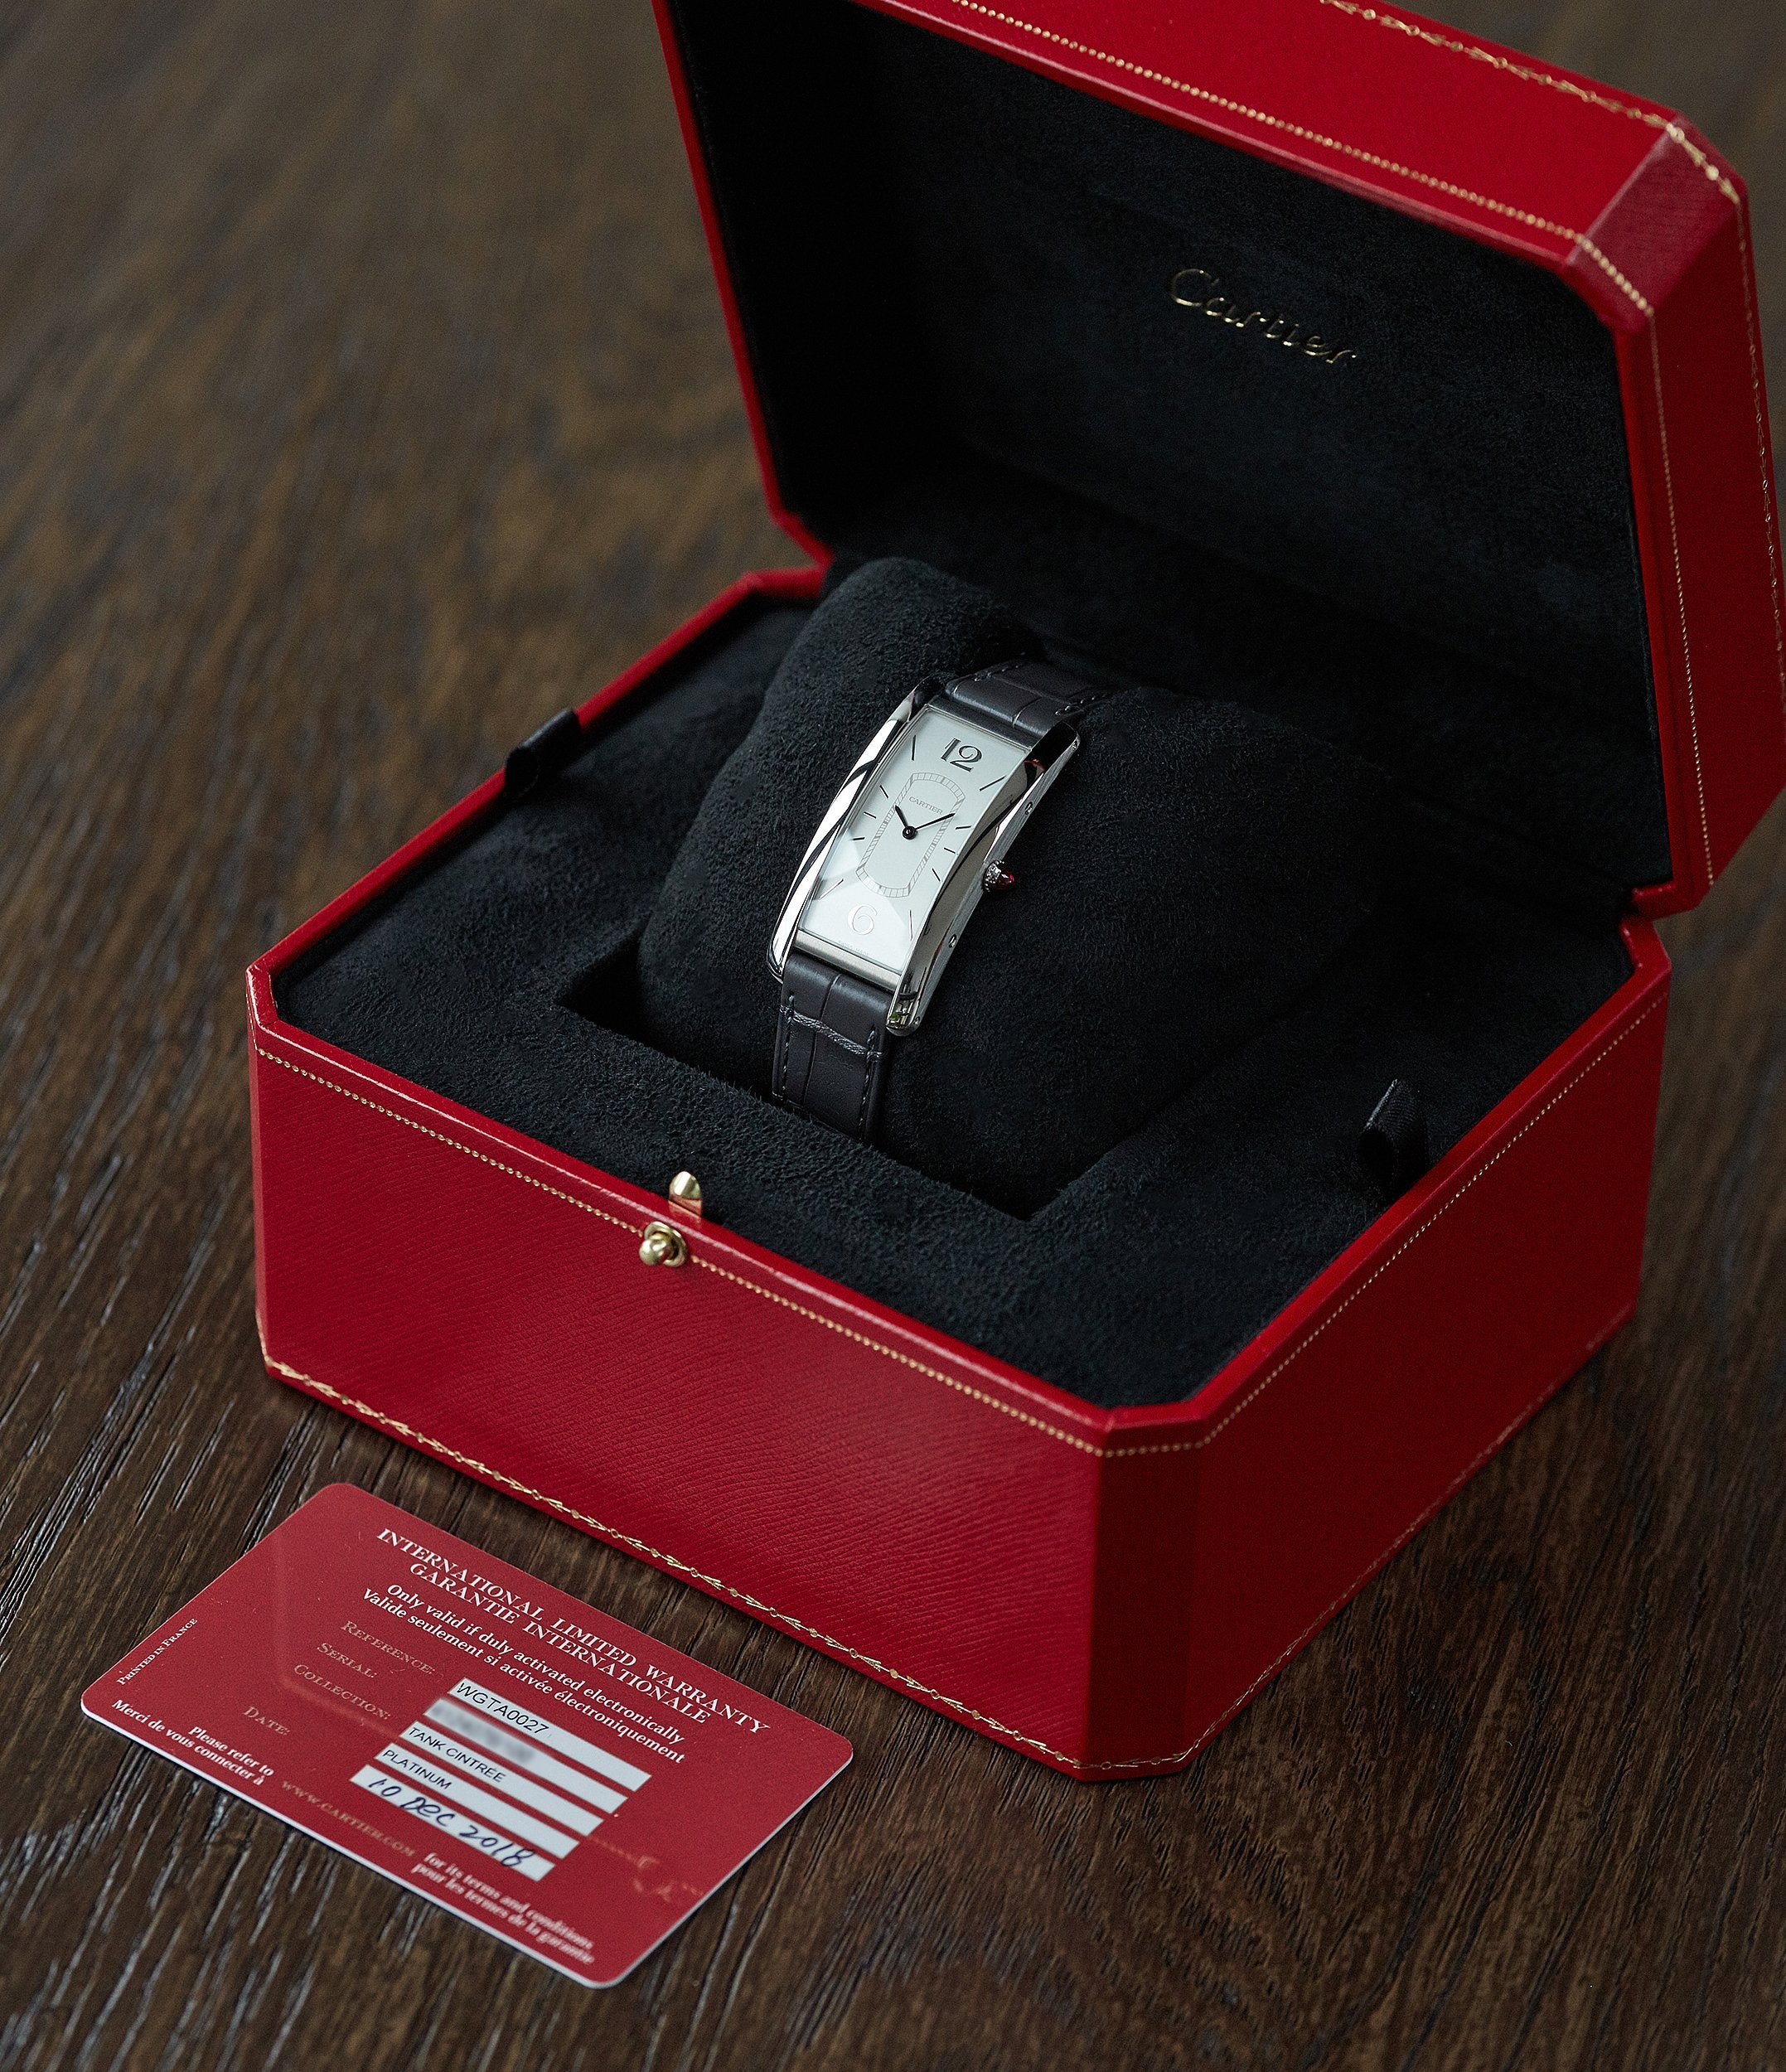 full set pre-owned Cartier Tank Cintrée platinum Limited Edition time-only dress watch for sale online A Collected Man London UK specialist rare watches